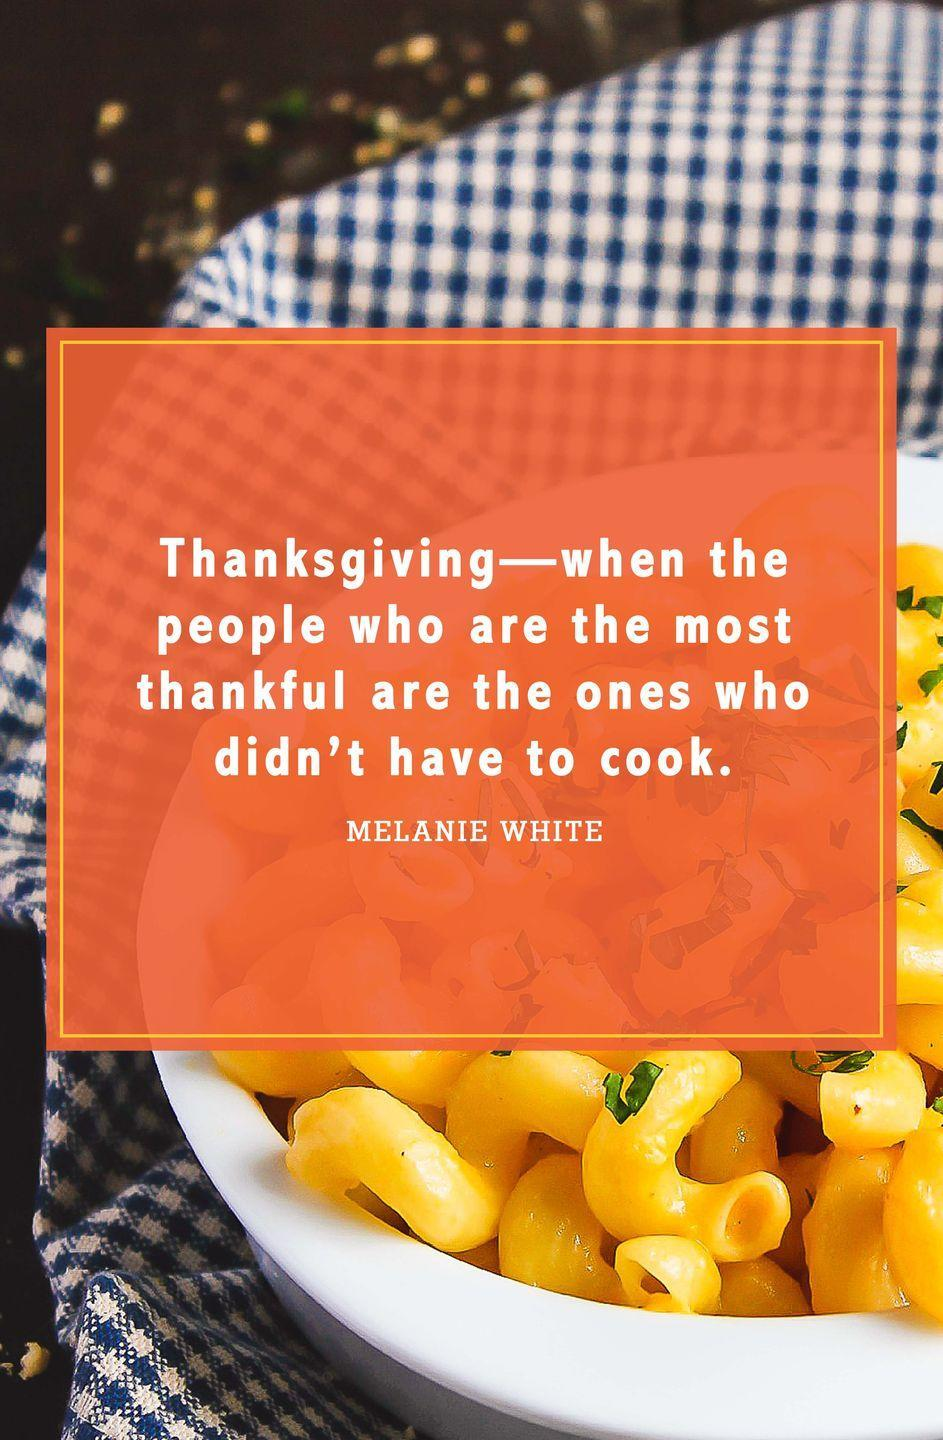 """<p>""""Thanksgiving—when the people who are the most thankful are the ones who didn't have to cook.""""</p>"""